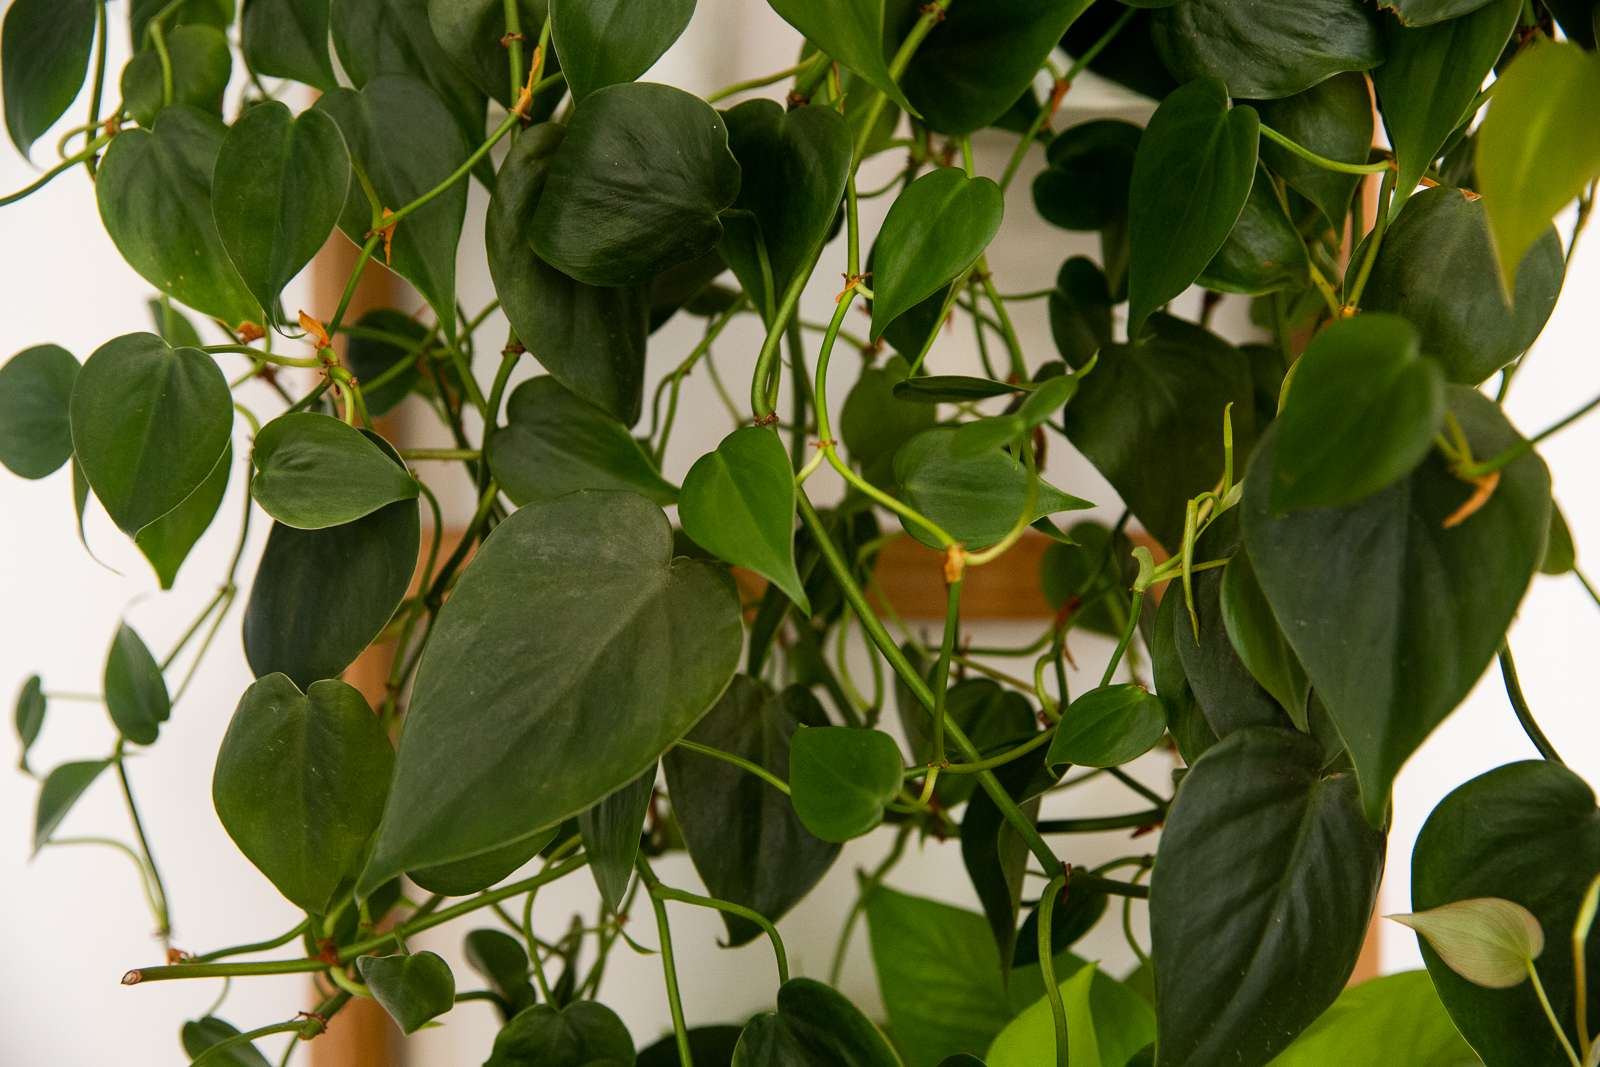 Heartleaf philodendron plant with dark green heart-shaped leaves hanging on vining stems